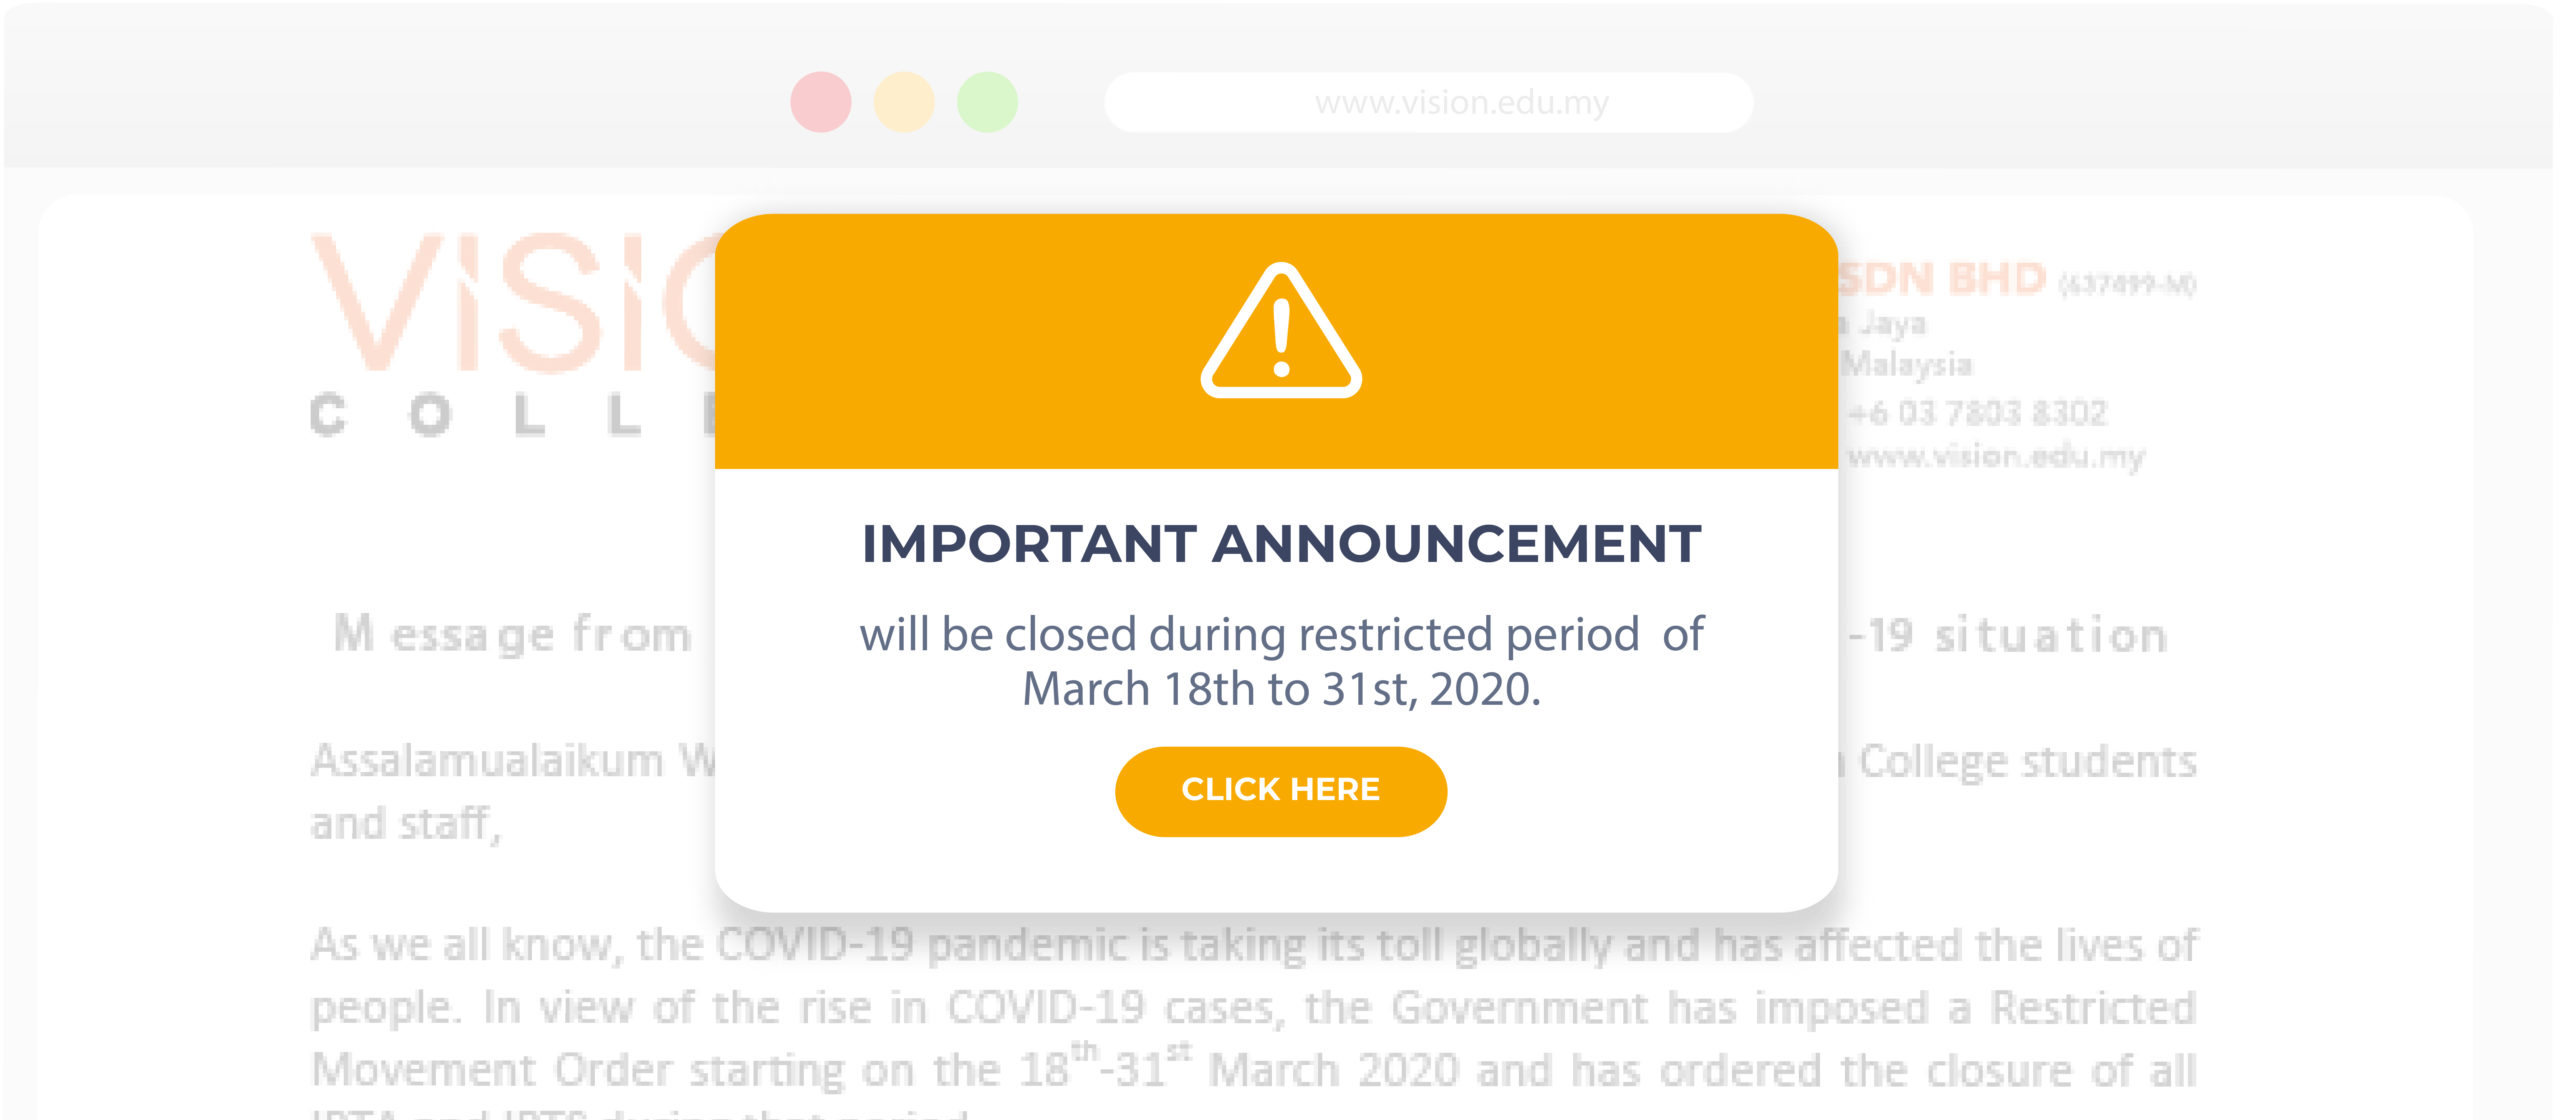 Vision College will be closed during restricted period  of March 18th to 31st, 2020.